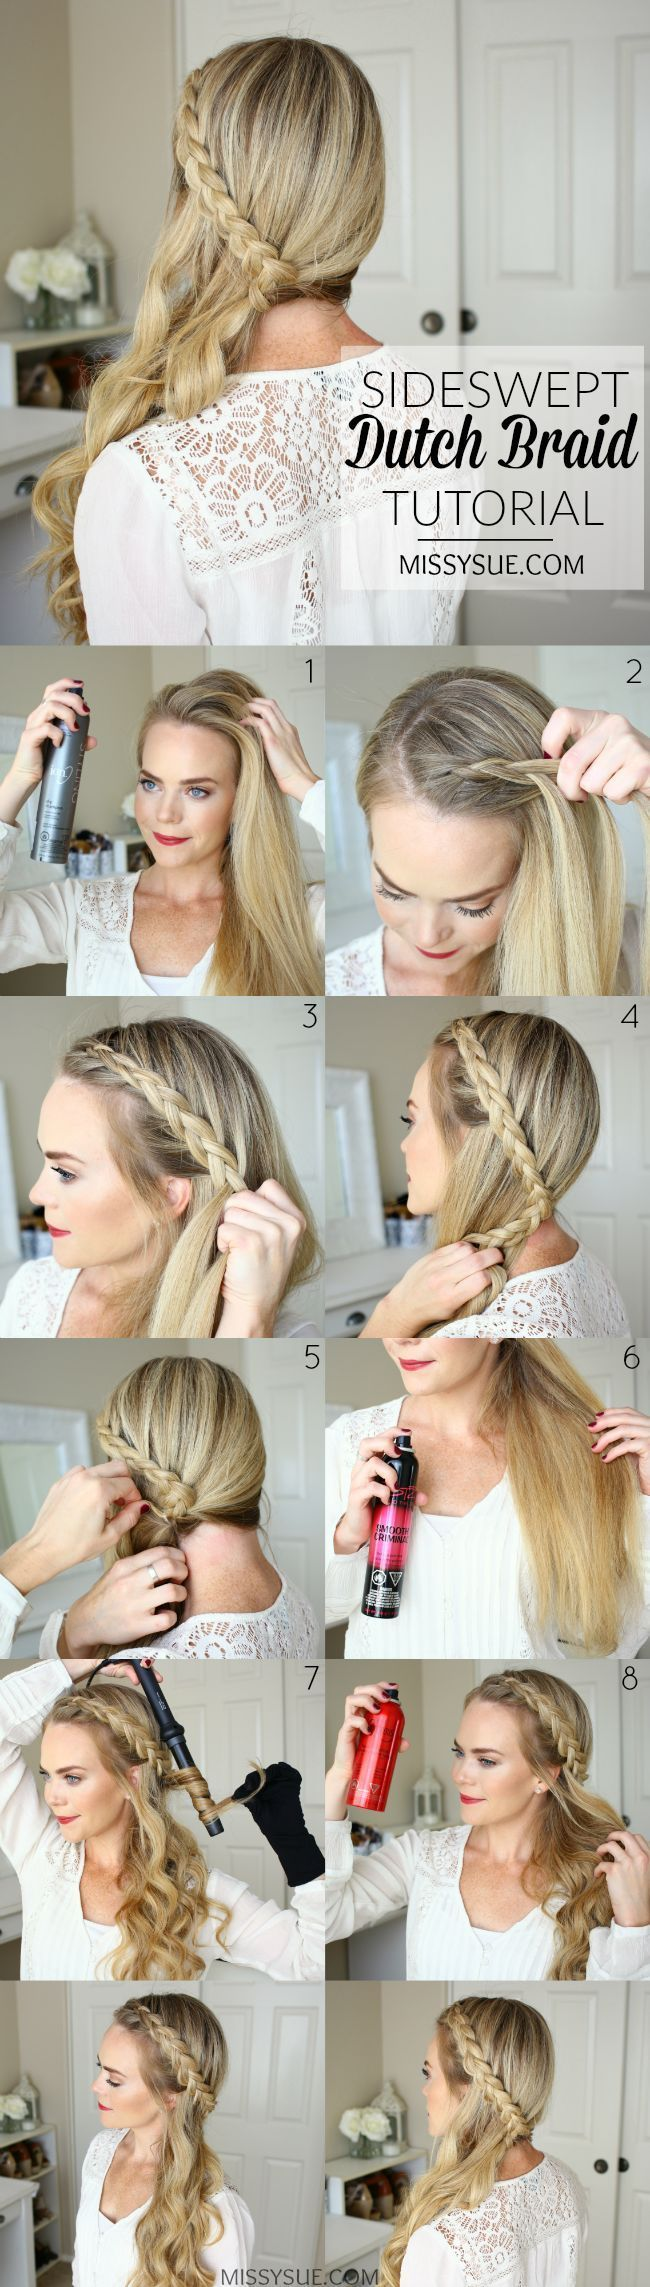 cool Sideswept Dutch Braid Tutorial... by http://www.danaz-haircuts.xyz/hair-tutorials/sideswept-dutch-braid-tutorial/